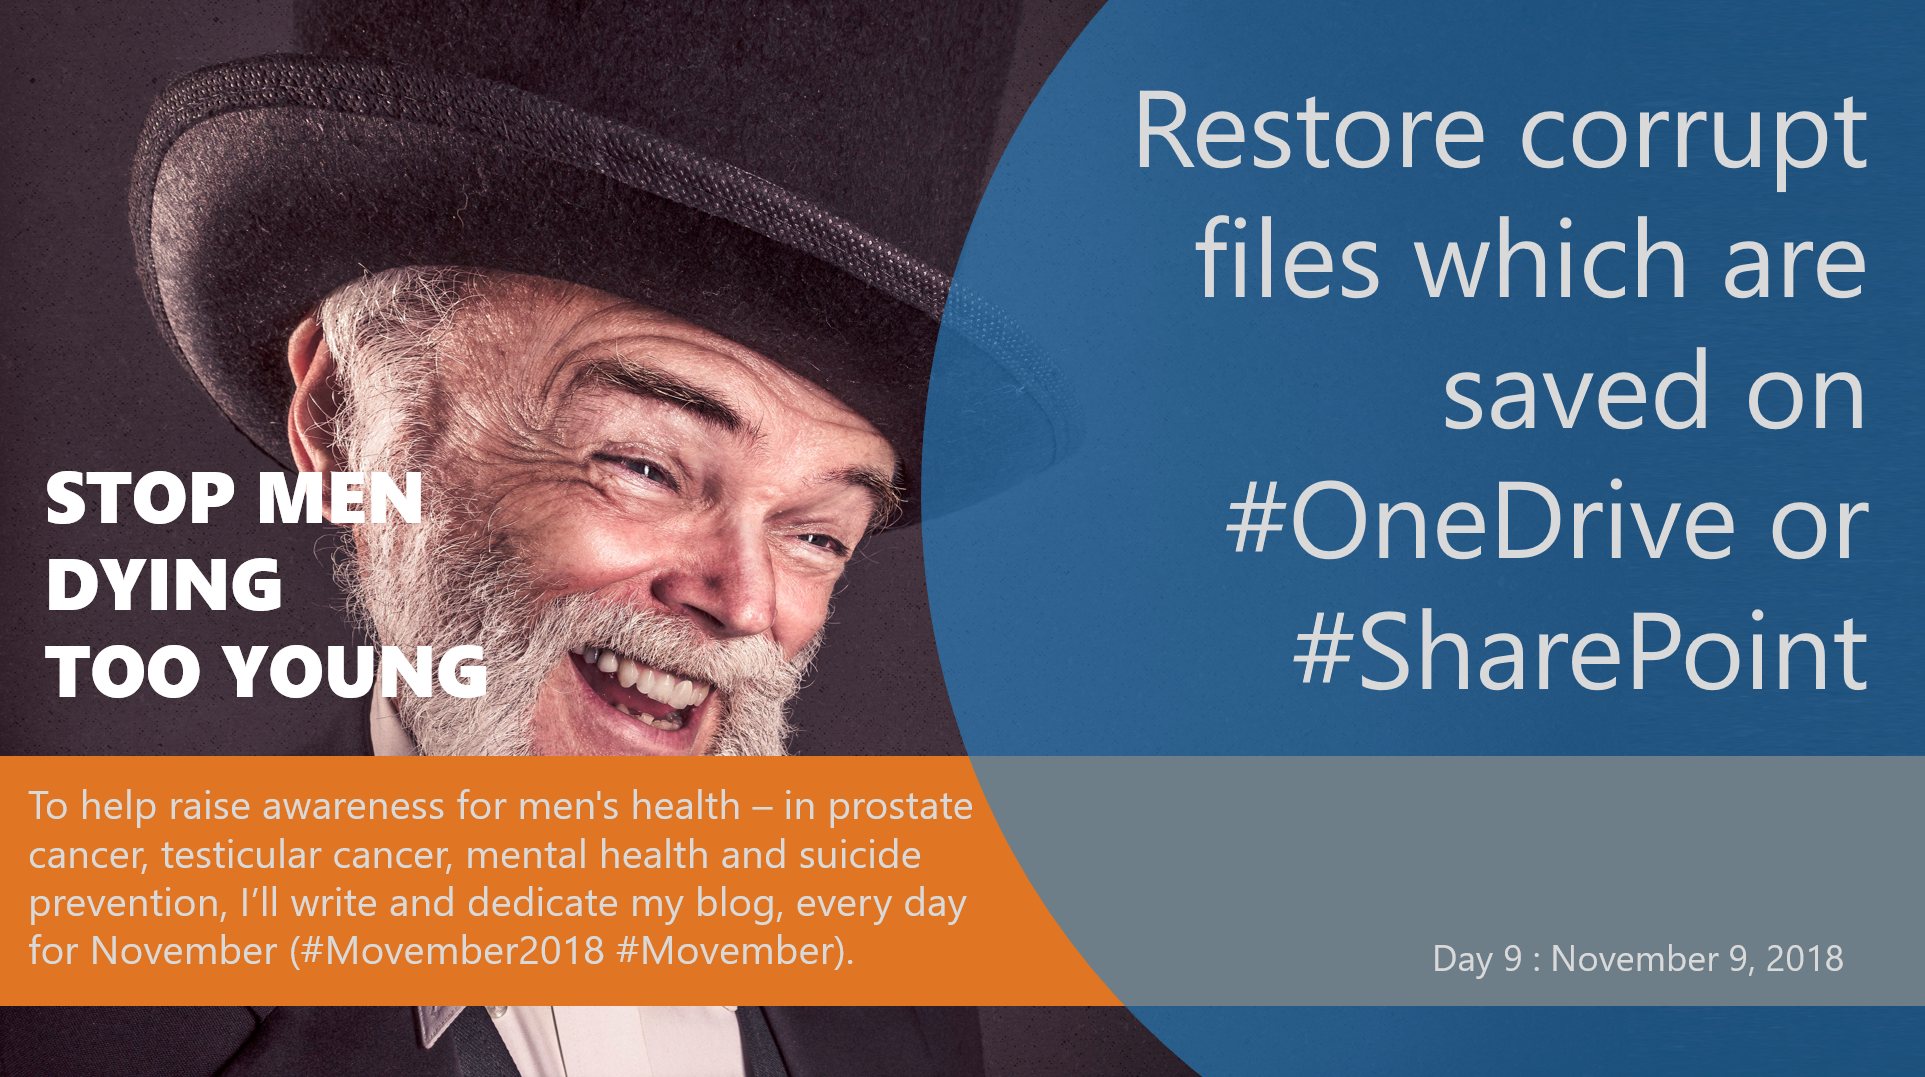 Restore corrupt files which are saved on #OneDrive or